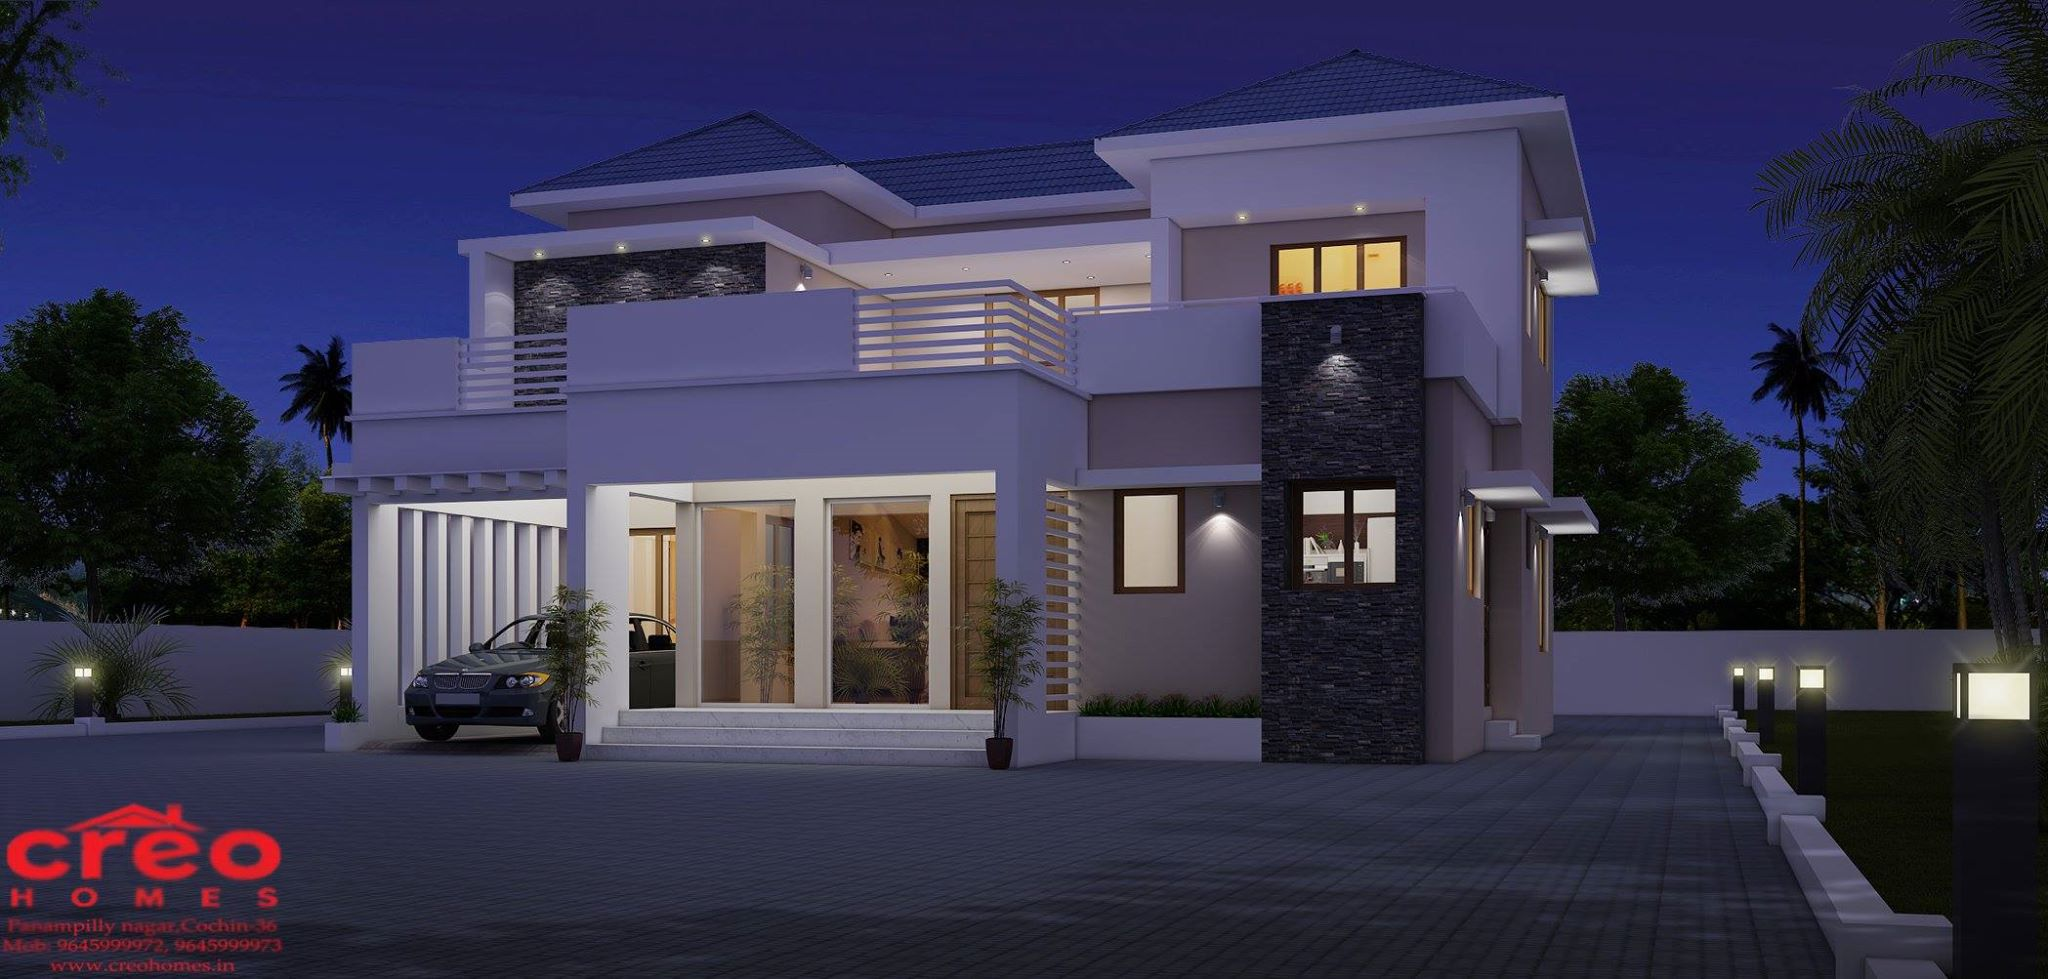 a brilliant concept home design home pictures world of architecture contemporary style home in